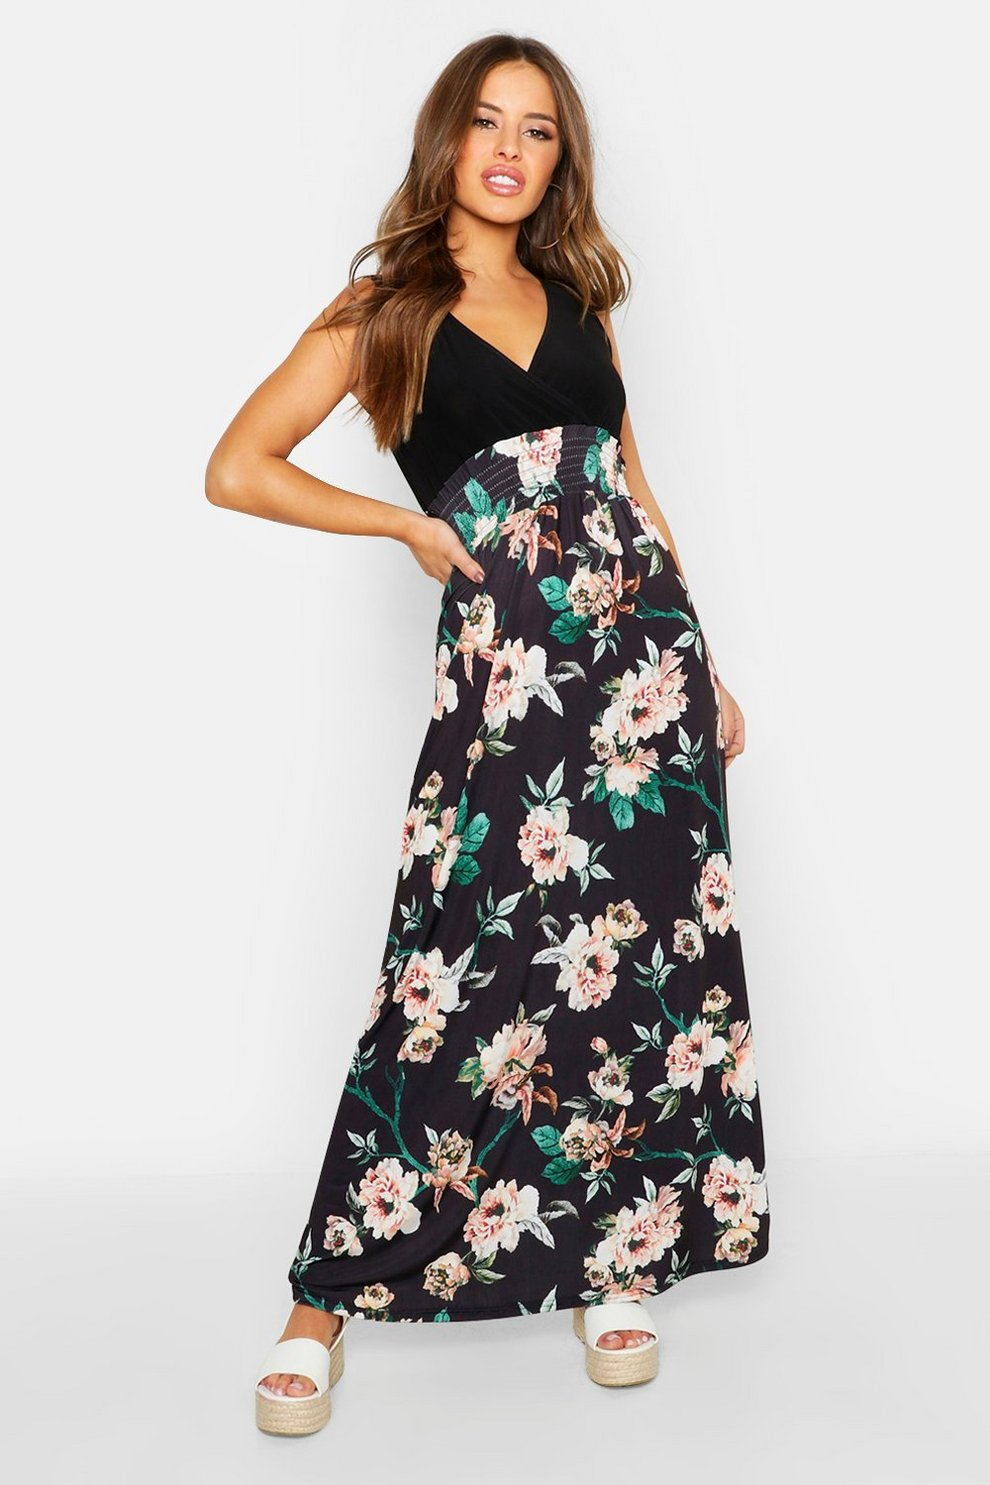 2732d3e91d1 Womens Black Petite Floral Print Maxi Dress. Hover to zoom